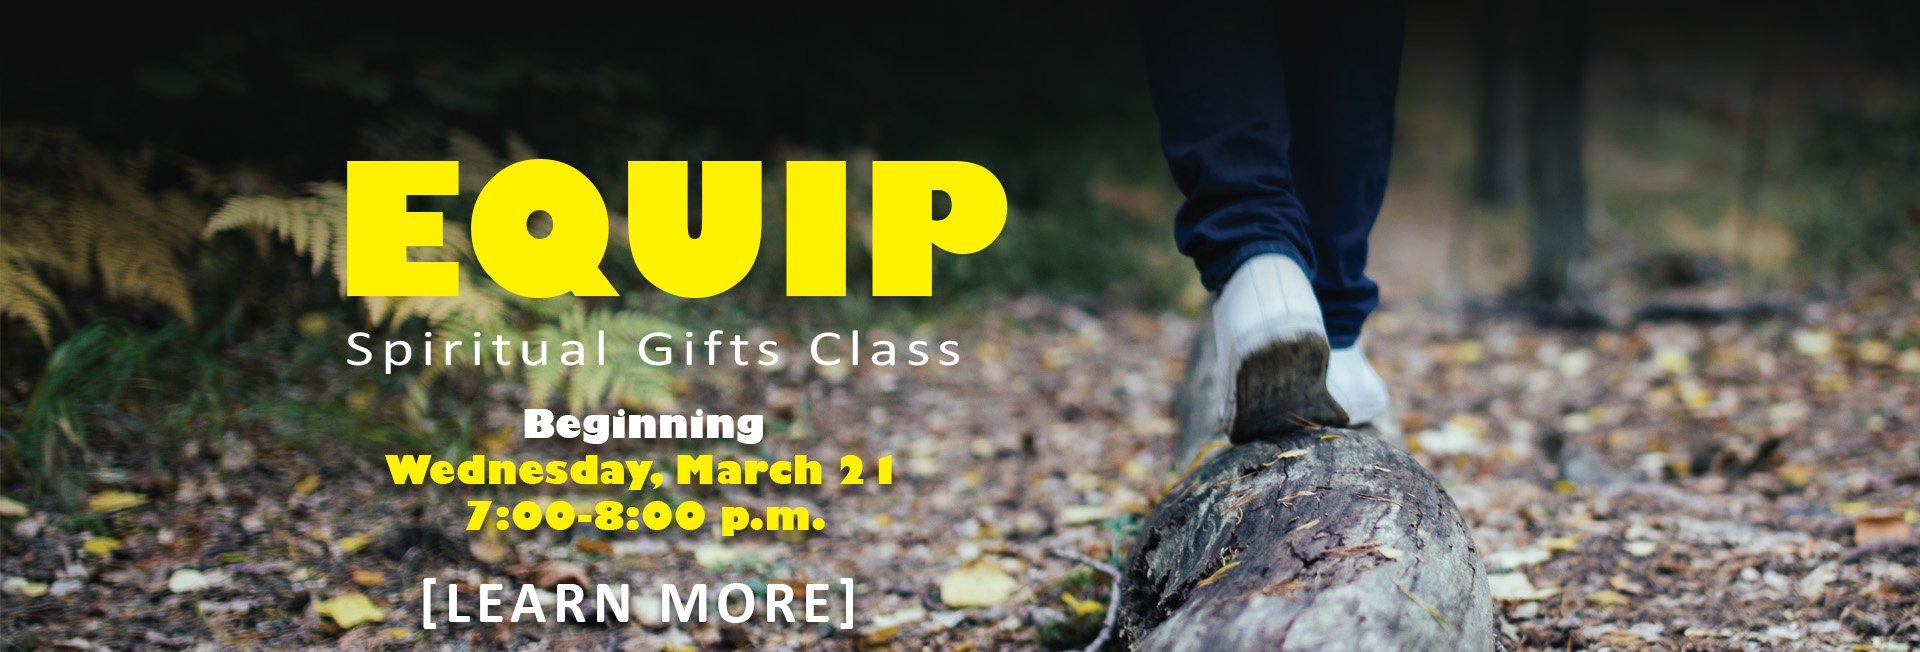 EQUIP - Spiritual Gifts Class - Wednesday, March 21 7:00-8:00 p.m.